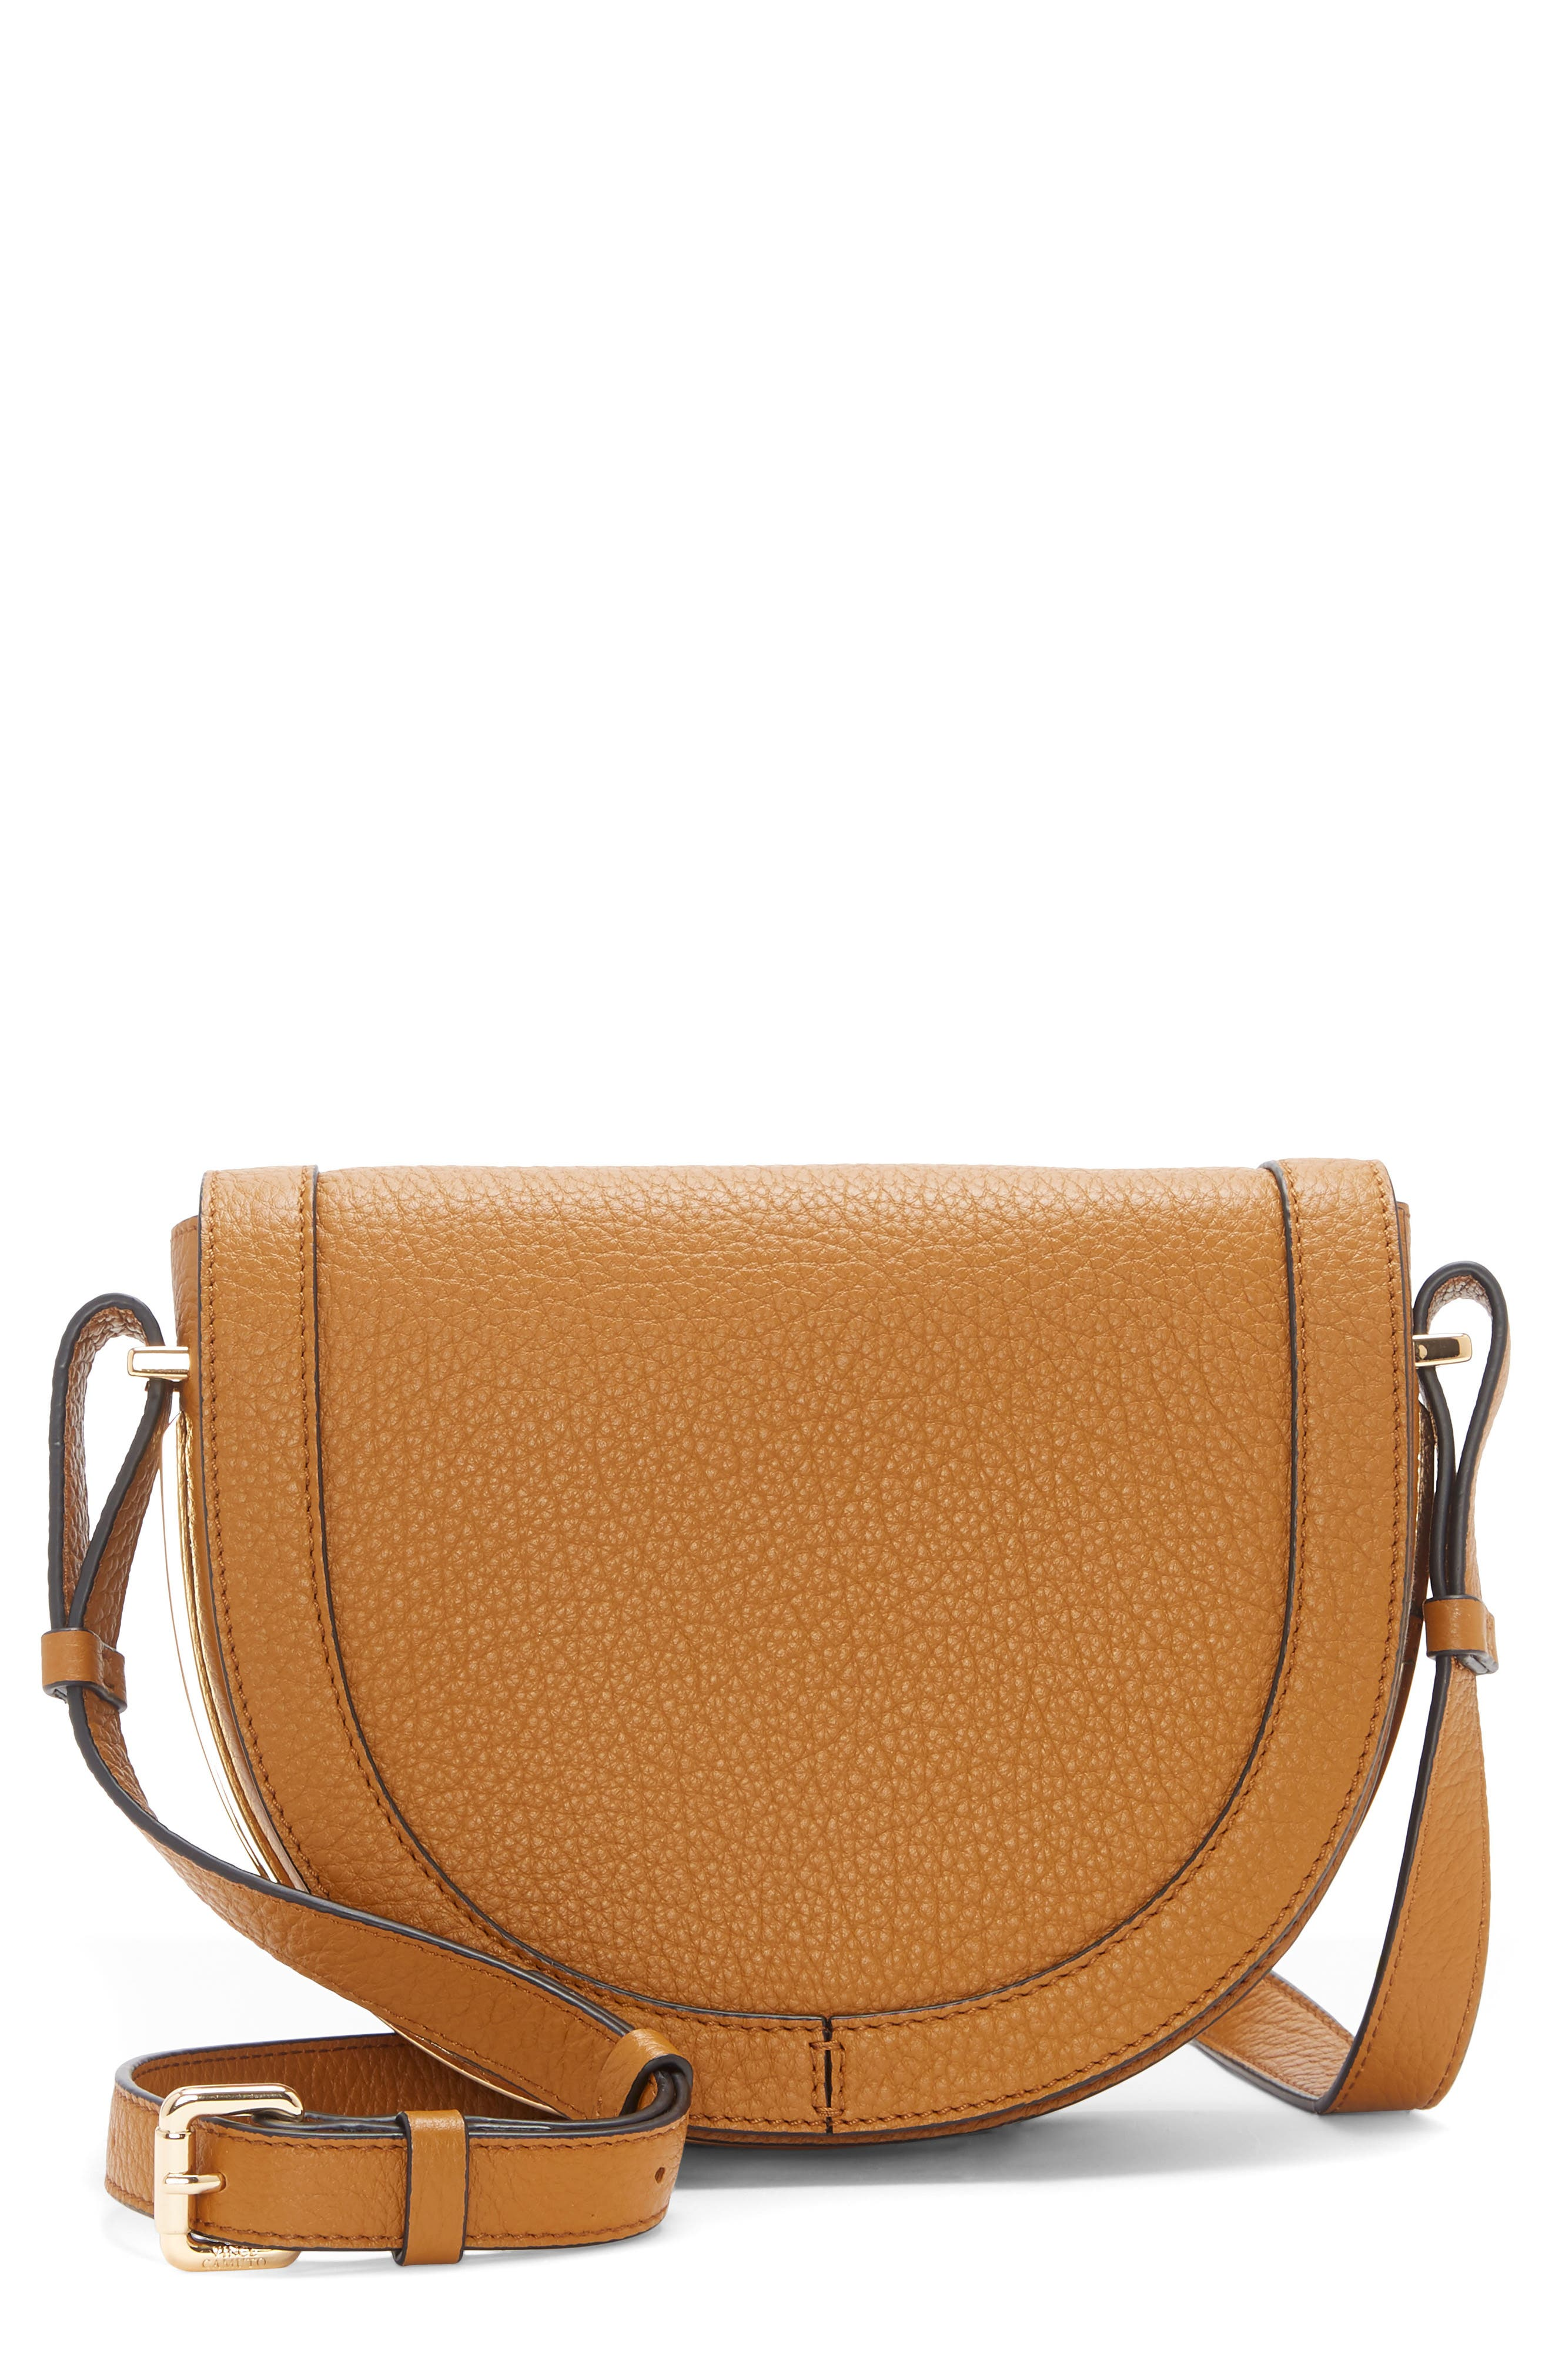 Image of Vince Camuto Clyde Crossbody